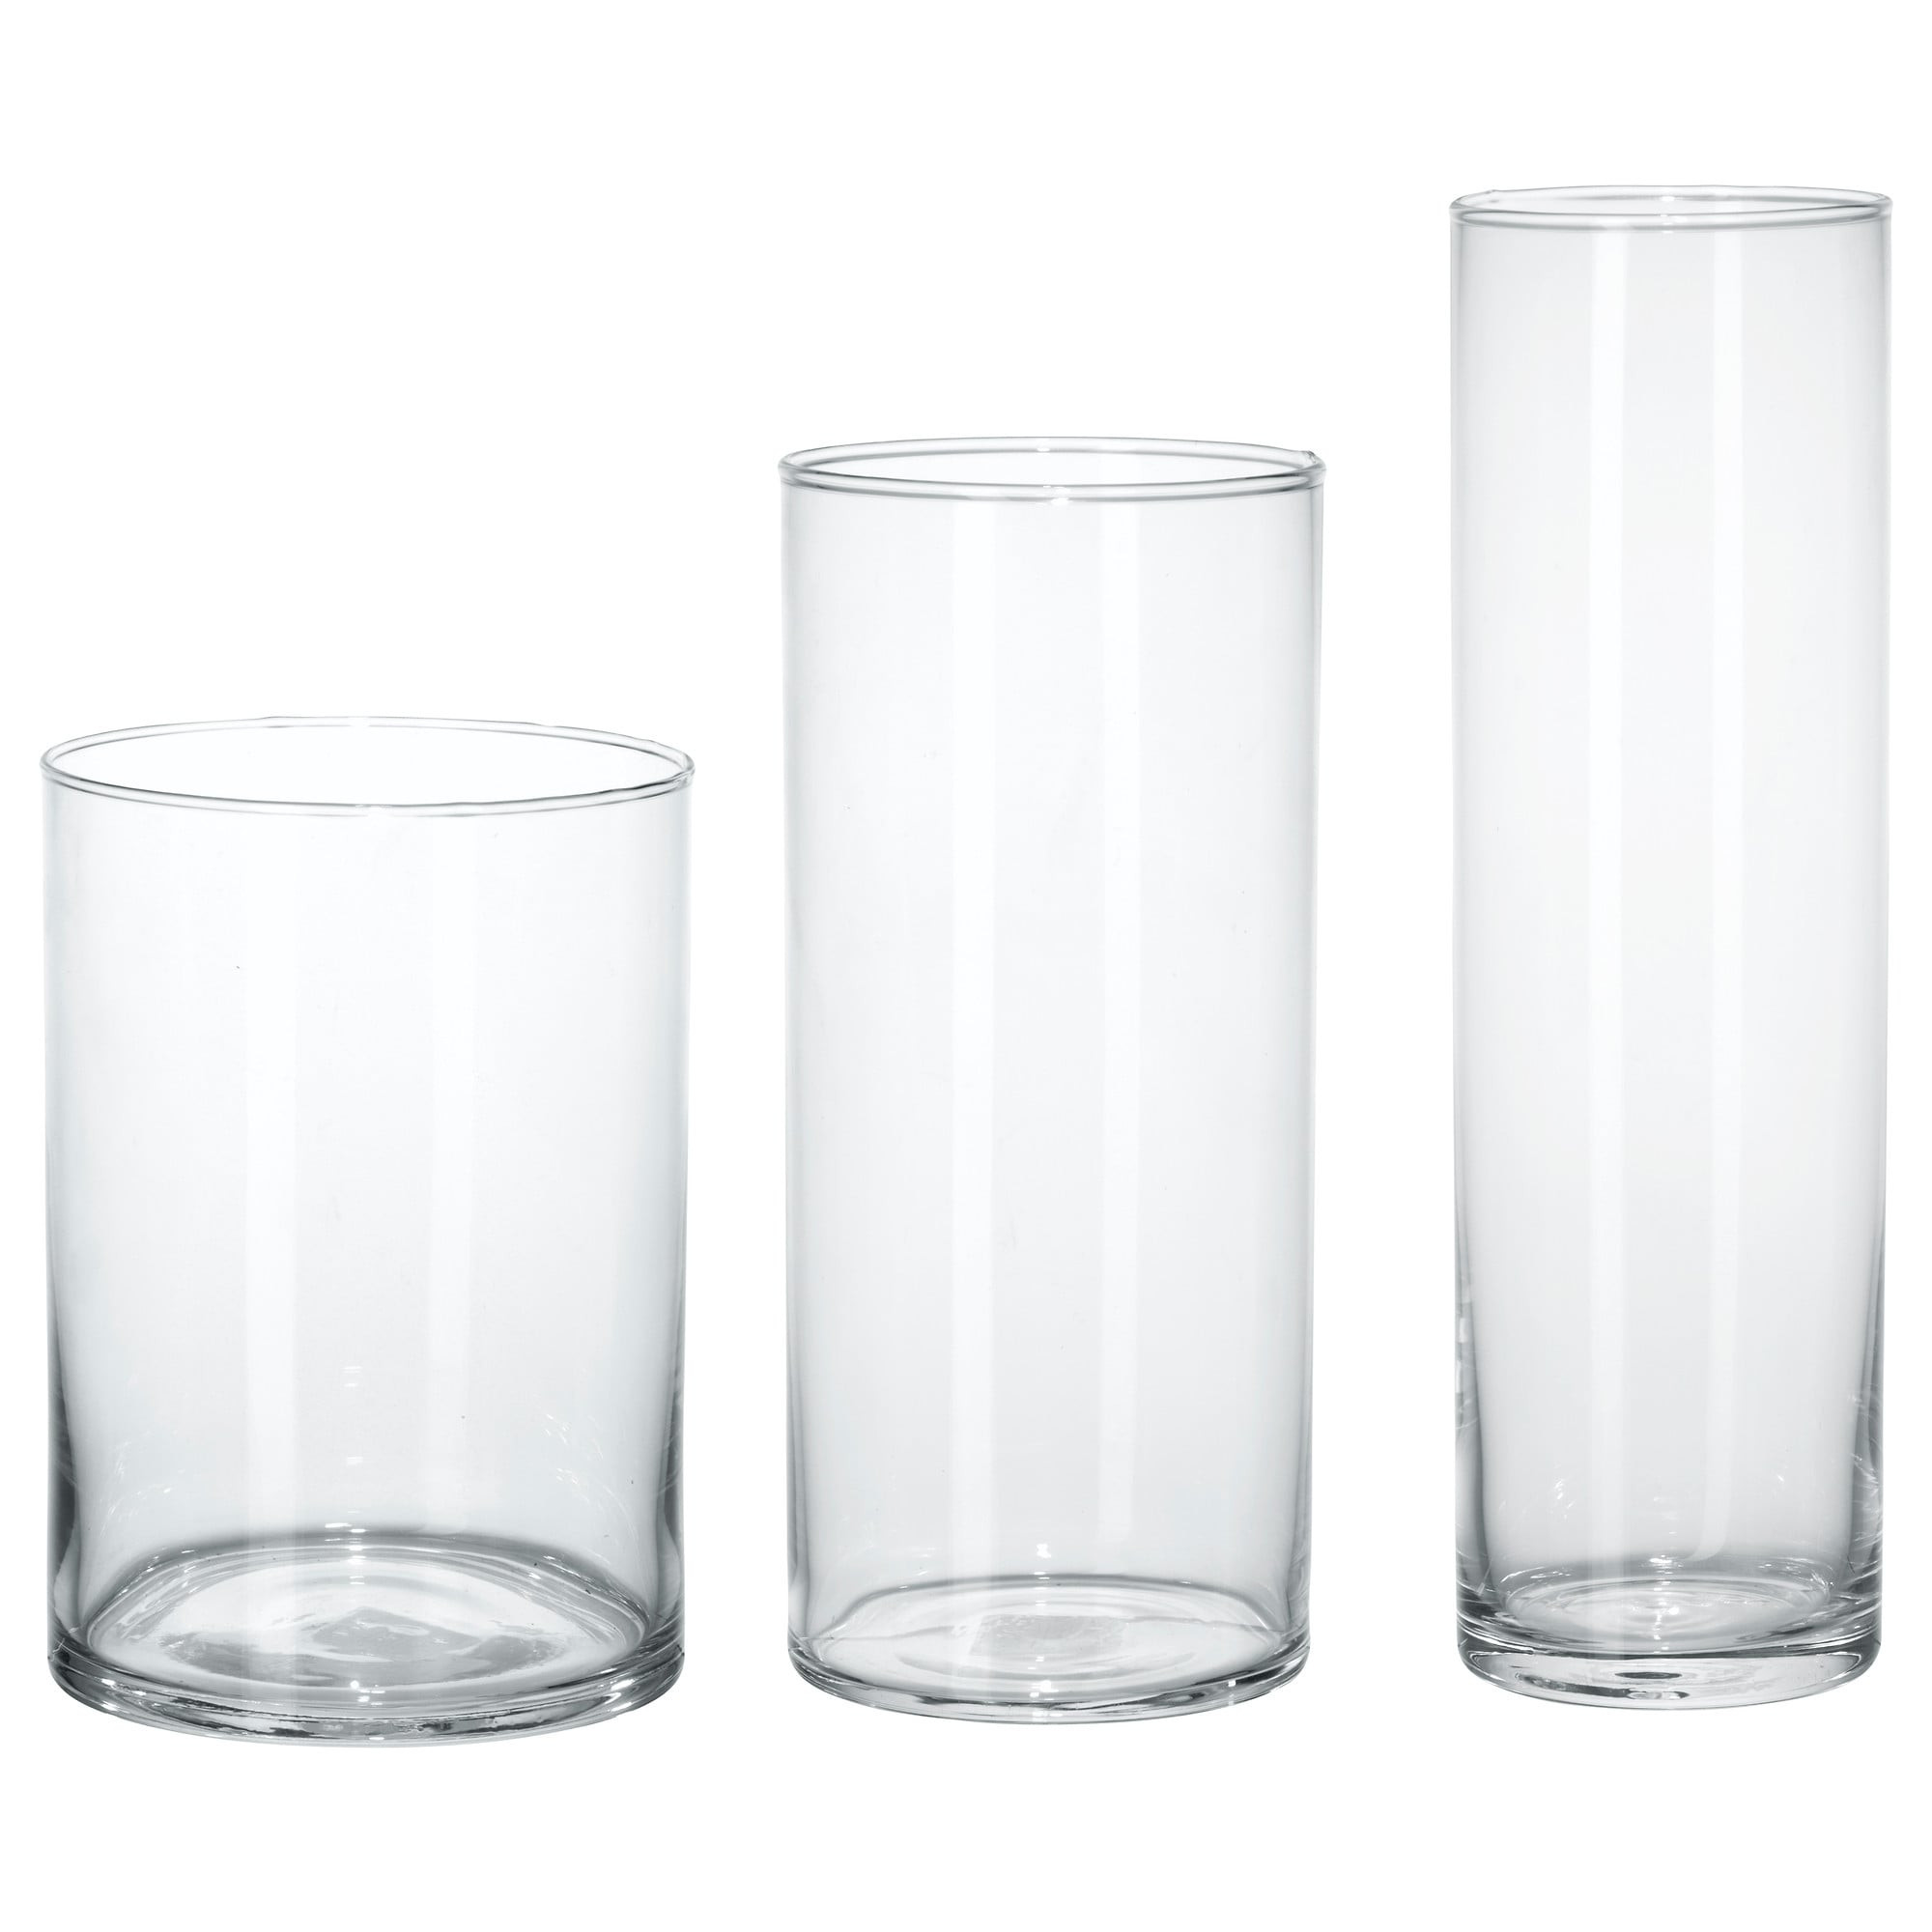 large glass floral vases of cylinder vase set of 3 ikea inside 0106636 pe254891 s5 jpg